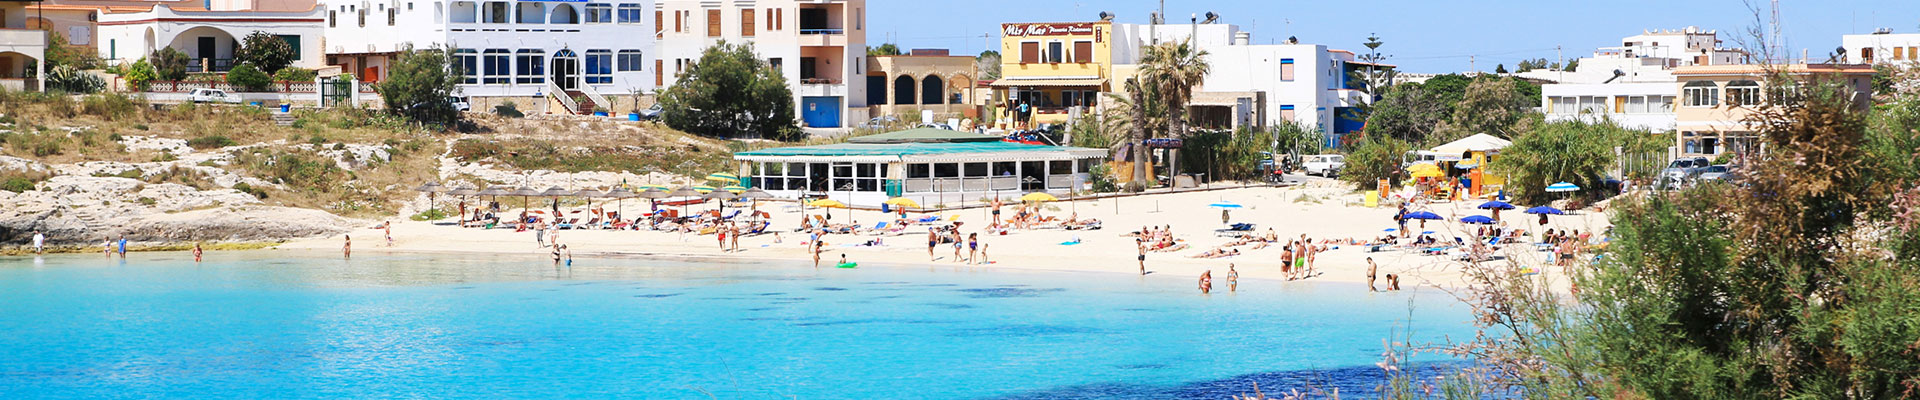 004 - Residence del Sole Lampedusa